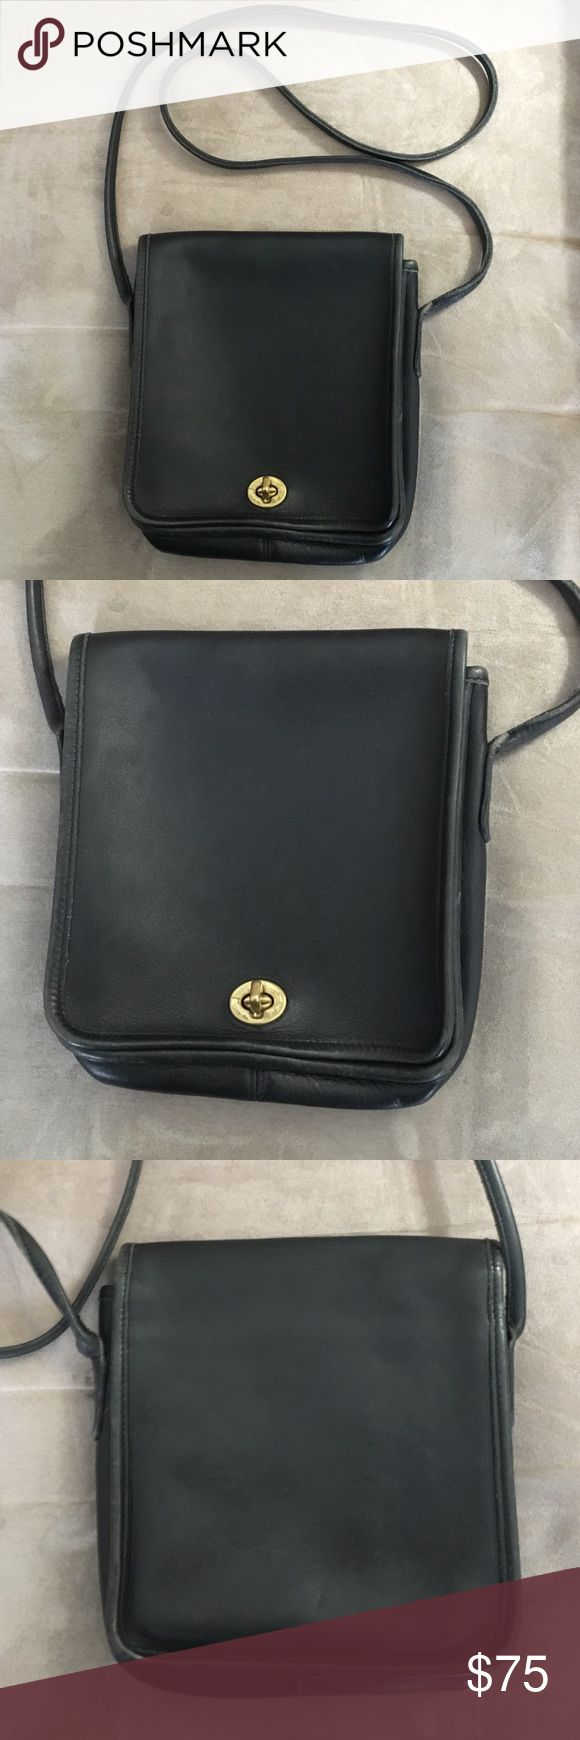 """Vintage USA coach shoulder bag black leather Authentic Vintage made in the USA coach cross body shoulder bag black leather. Dimensions: 8""""x8""""x2"""". Strap length is 48"""" and width is .25"""" Coach Bags Crossbody Bags"""